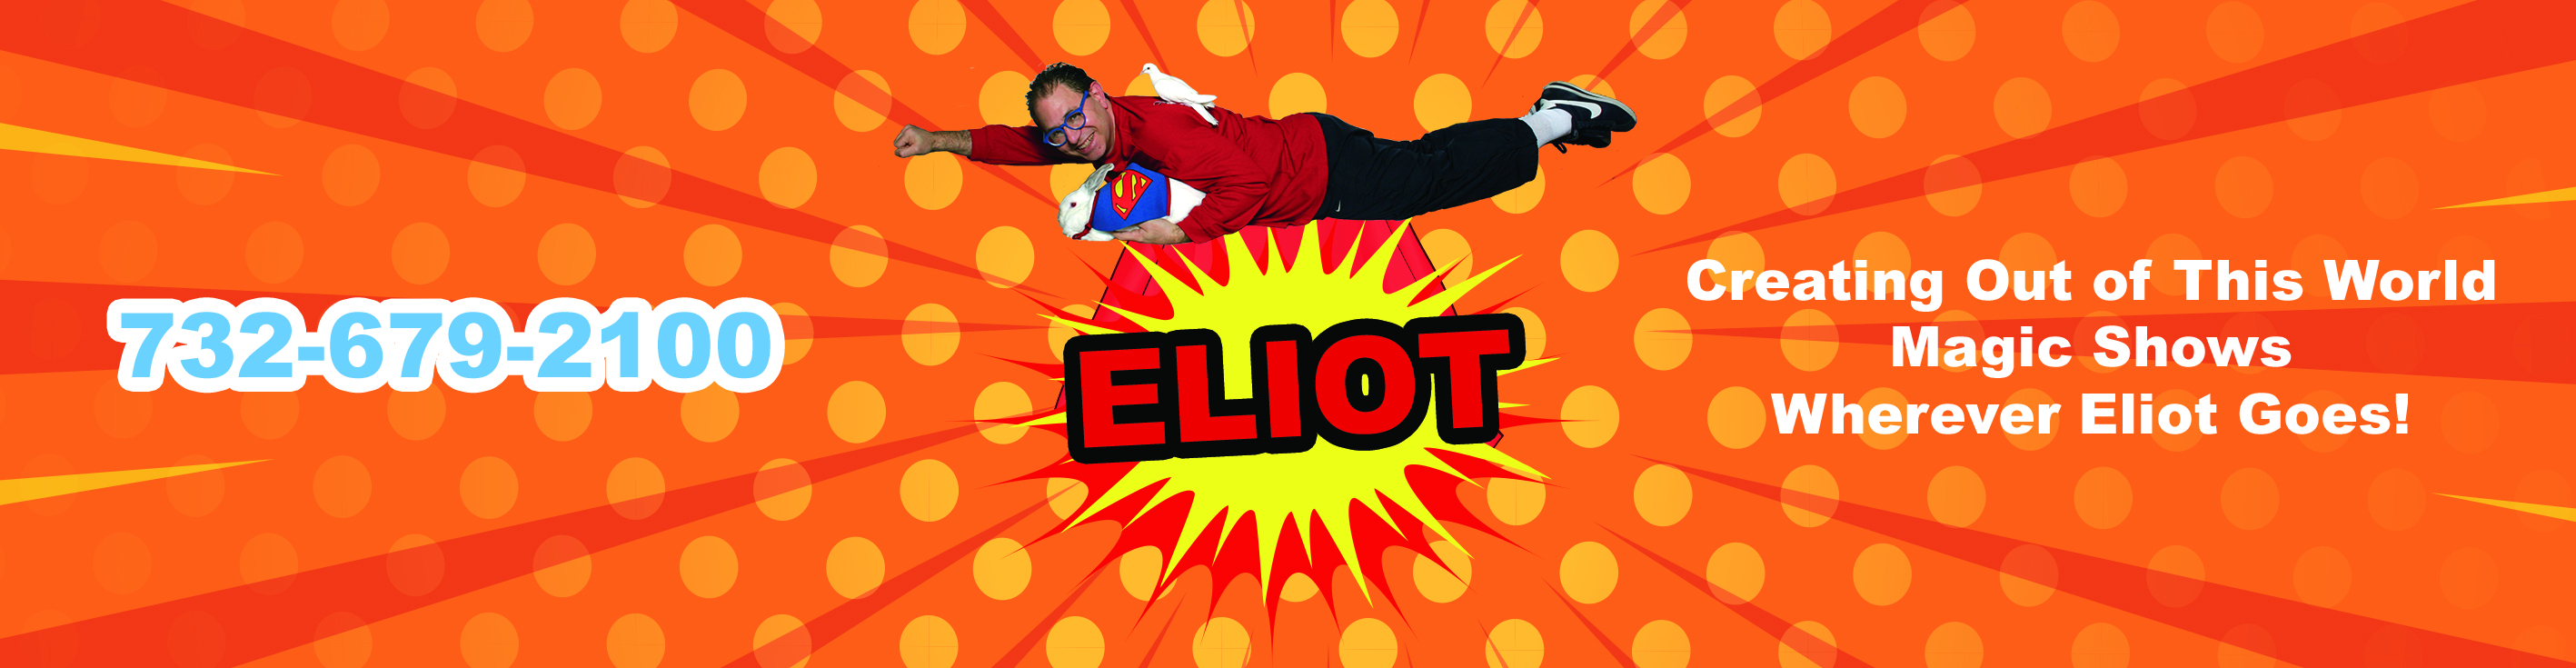 Eliot The Super Magic Man Photo